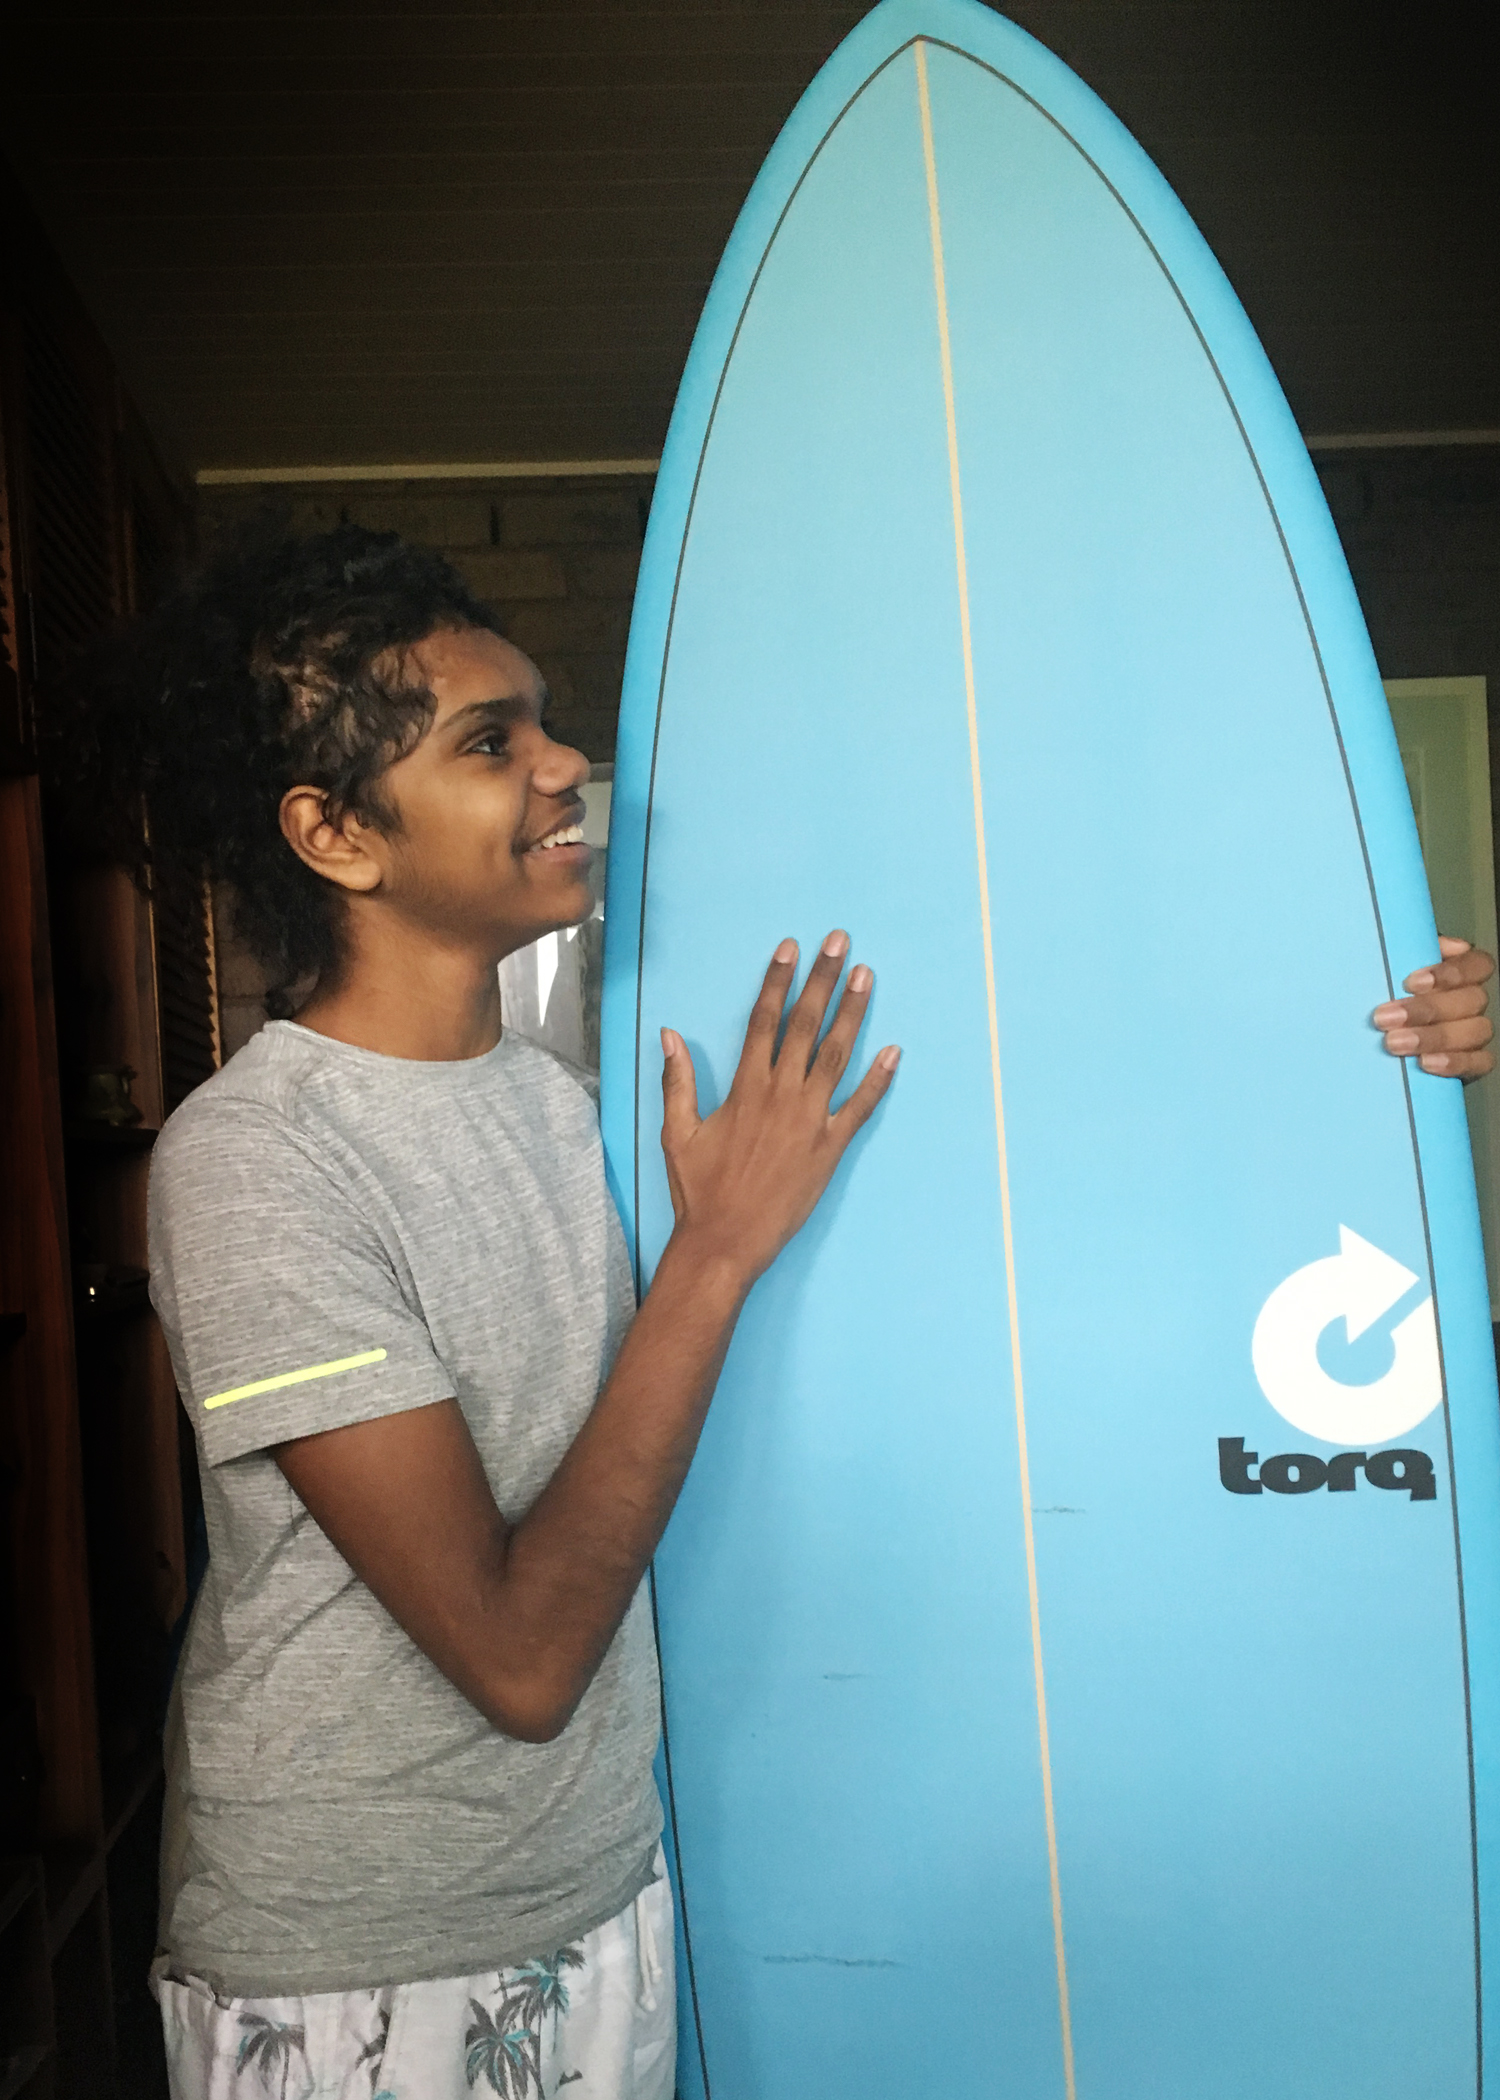 Cebby still plans to ride the surfboard he got for his 14th birthday.